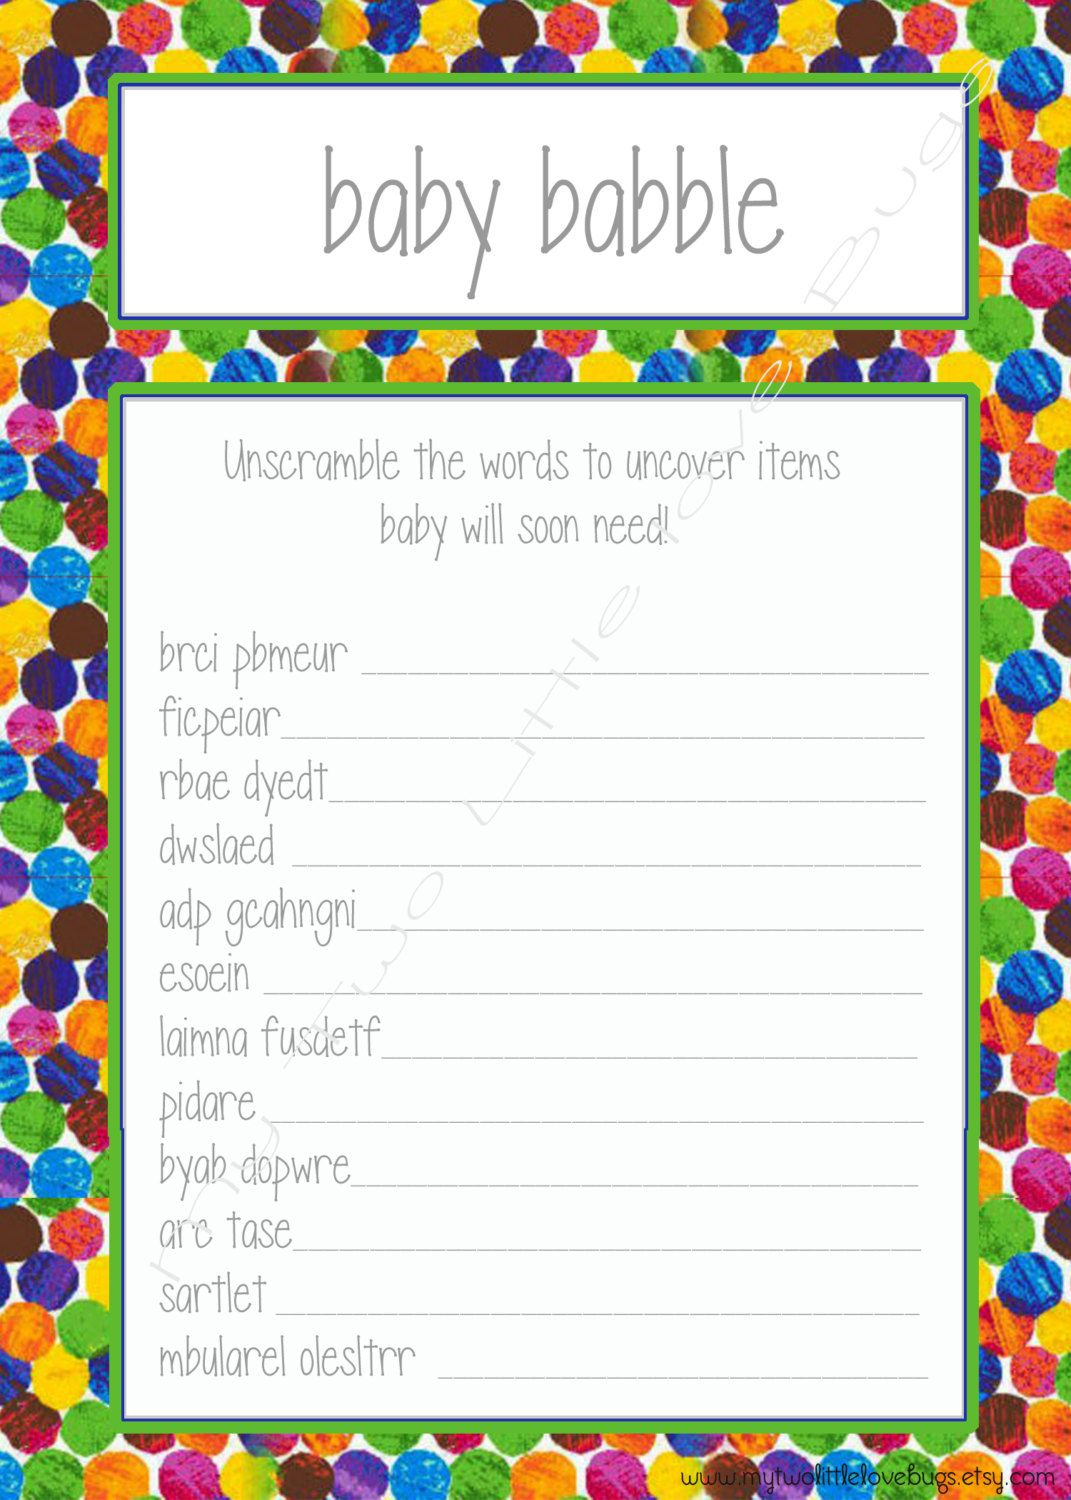 Baby Babble Word Scramble